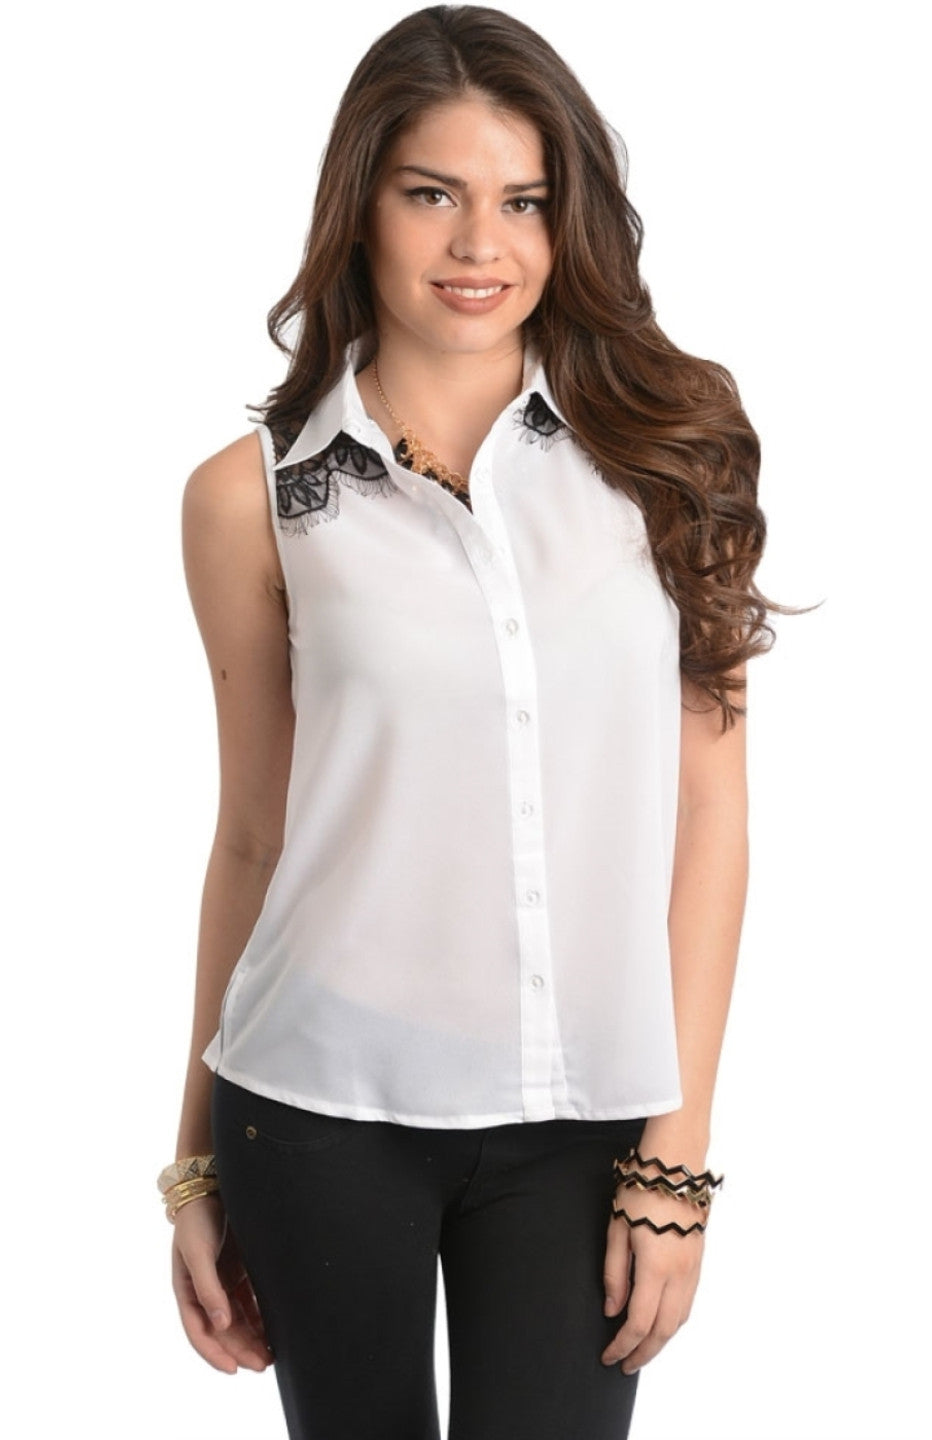 ad76610946990a Button Down Shirts – translation missing  en.general.meta.tagged